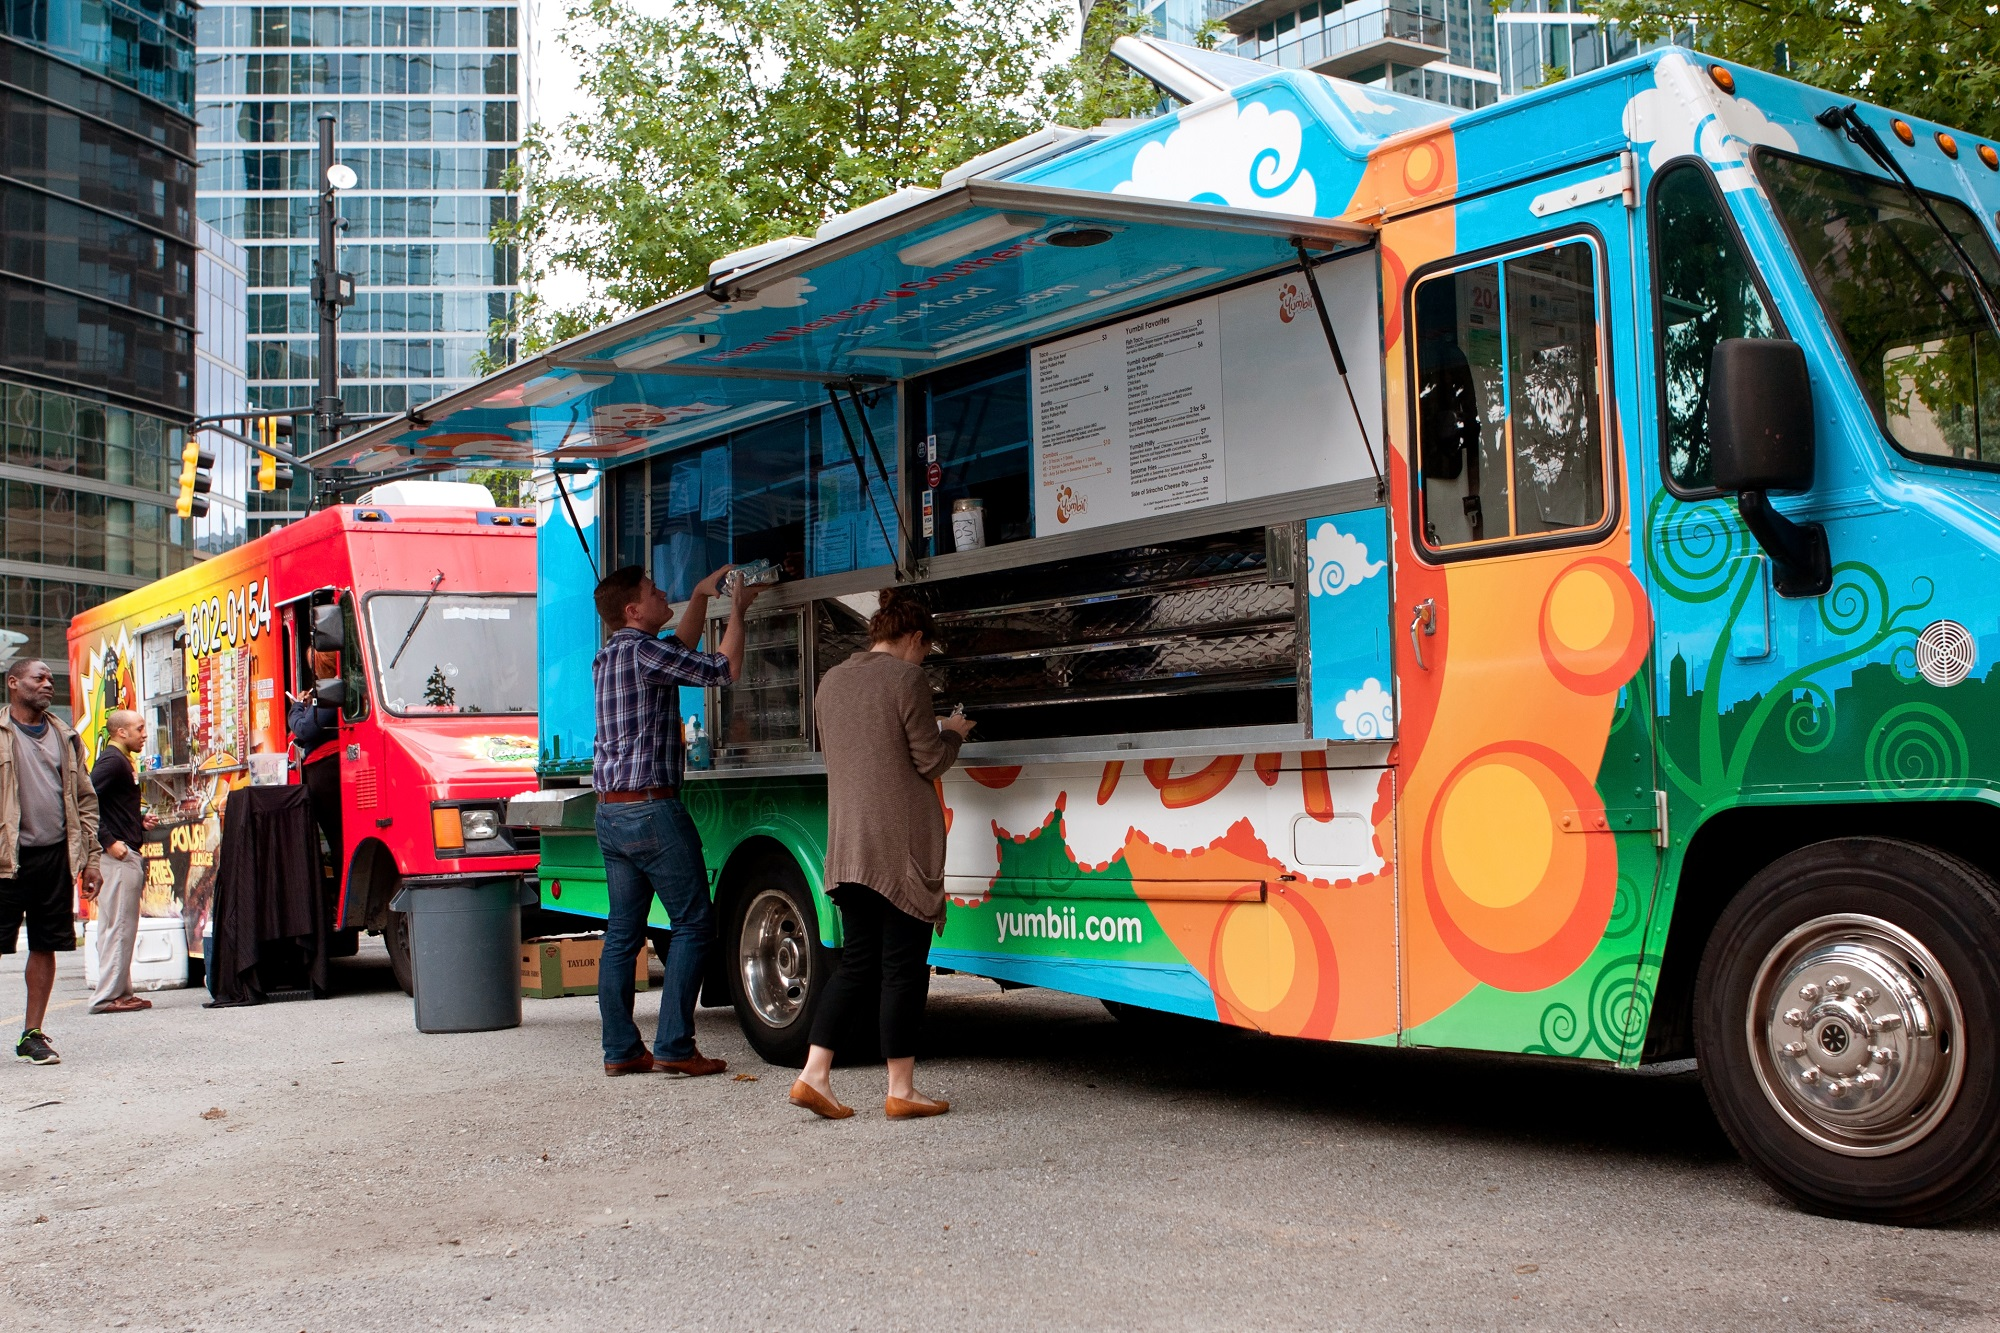 8 Secrets Behind the Most Successful Food Truck Businesses